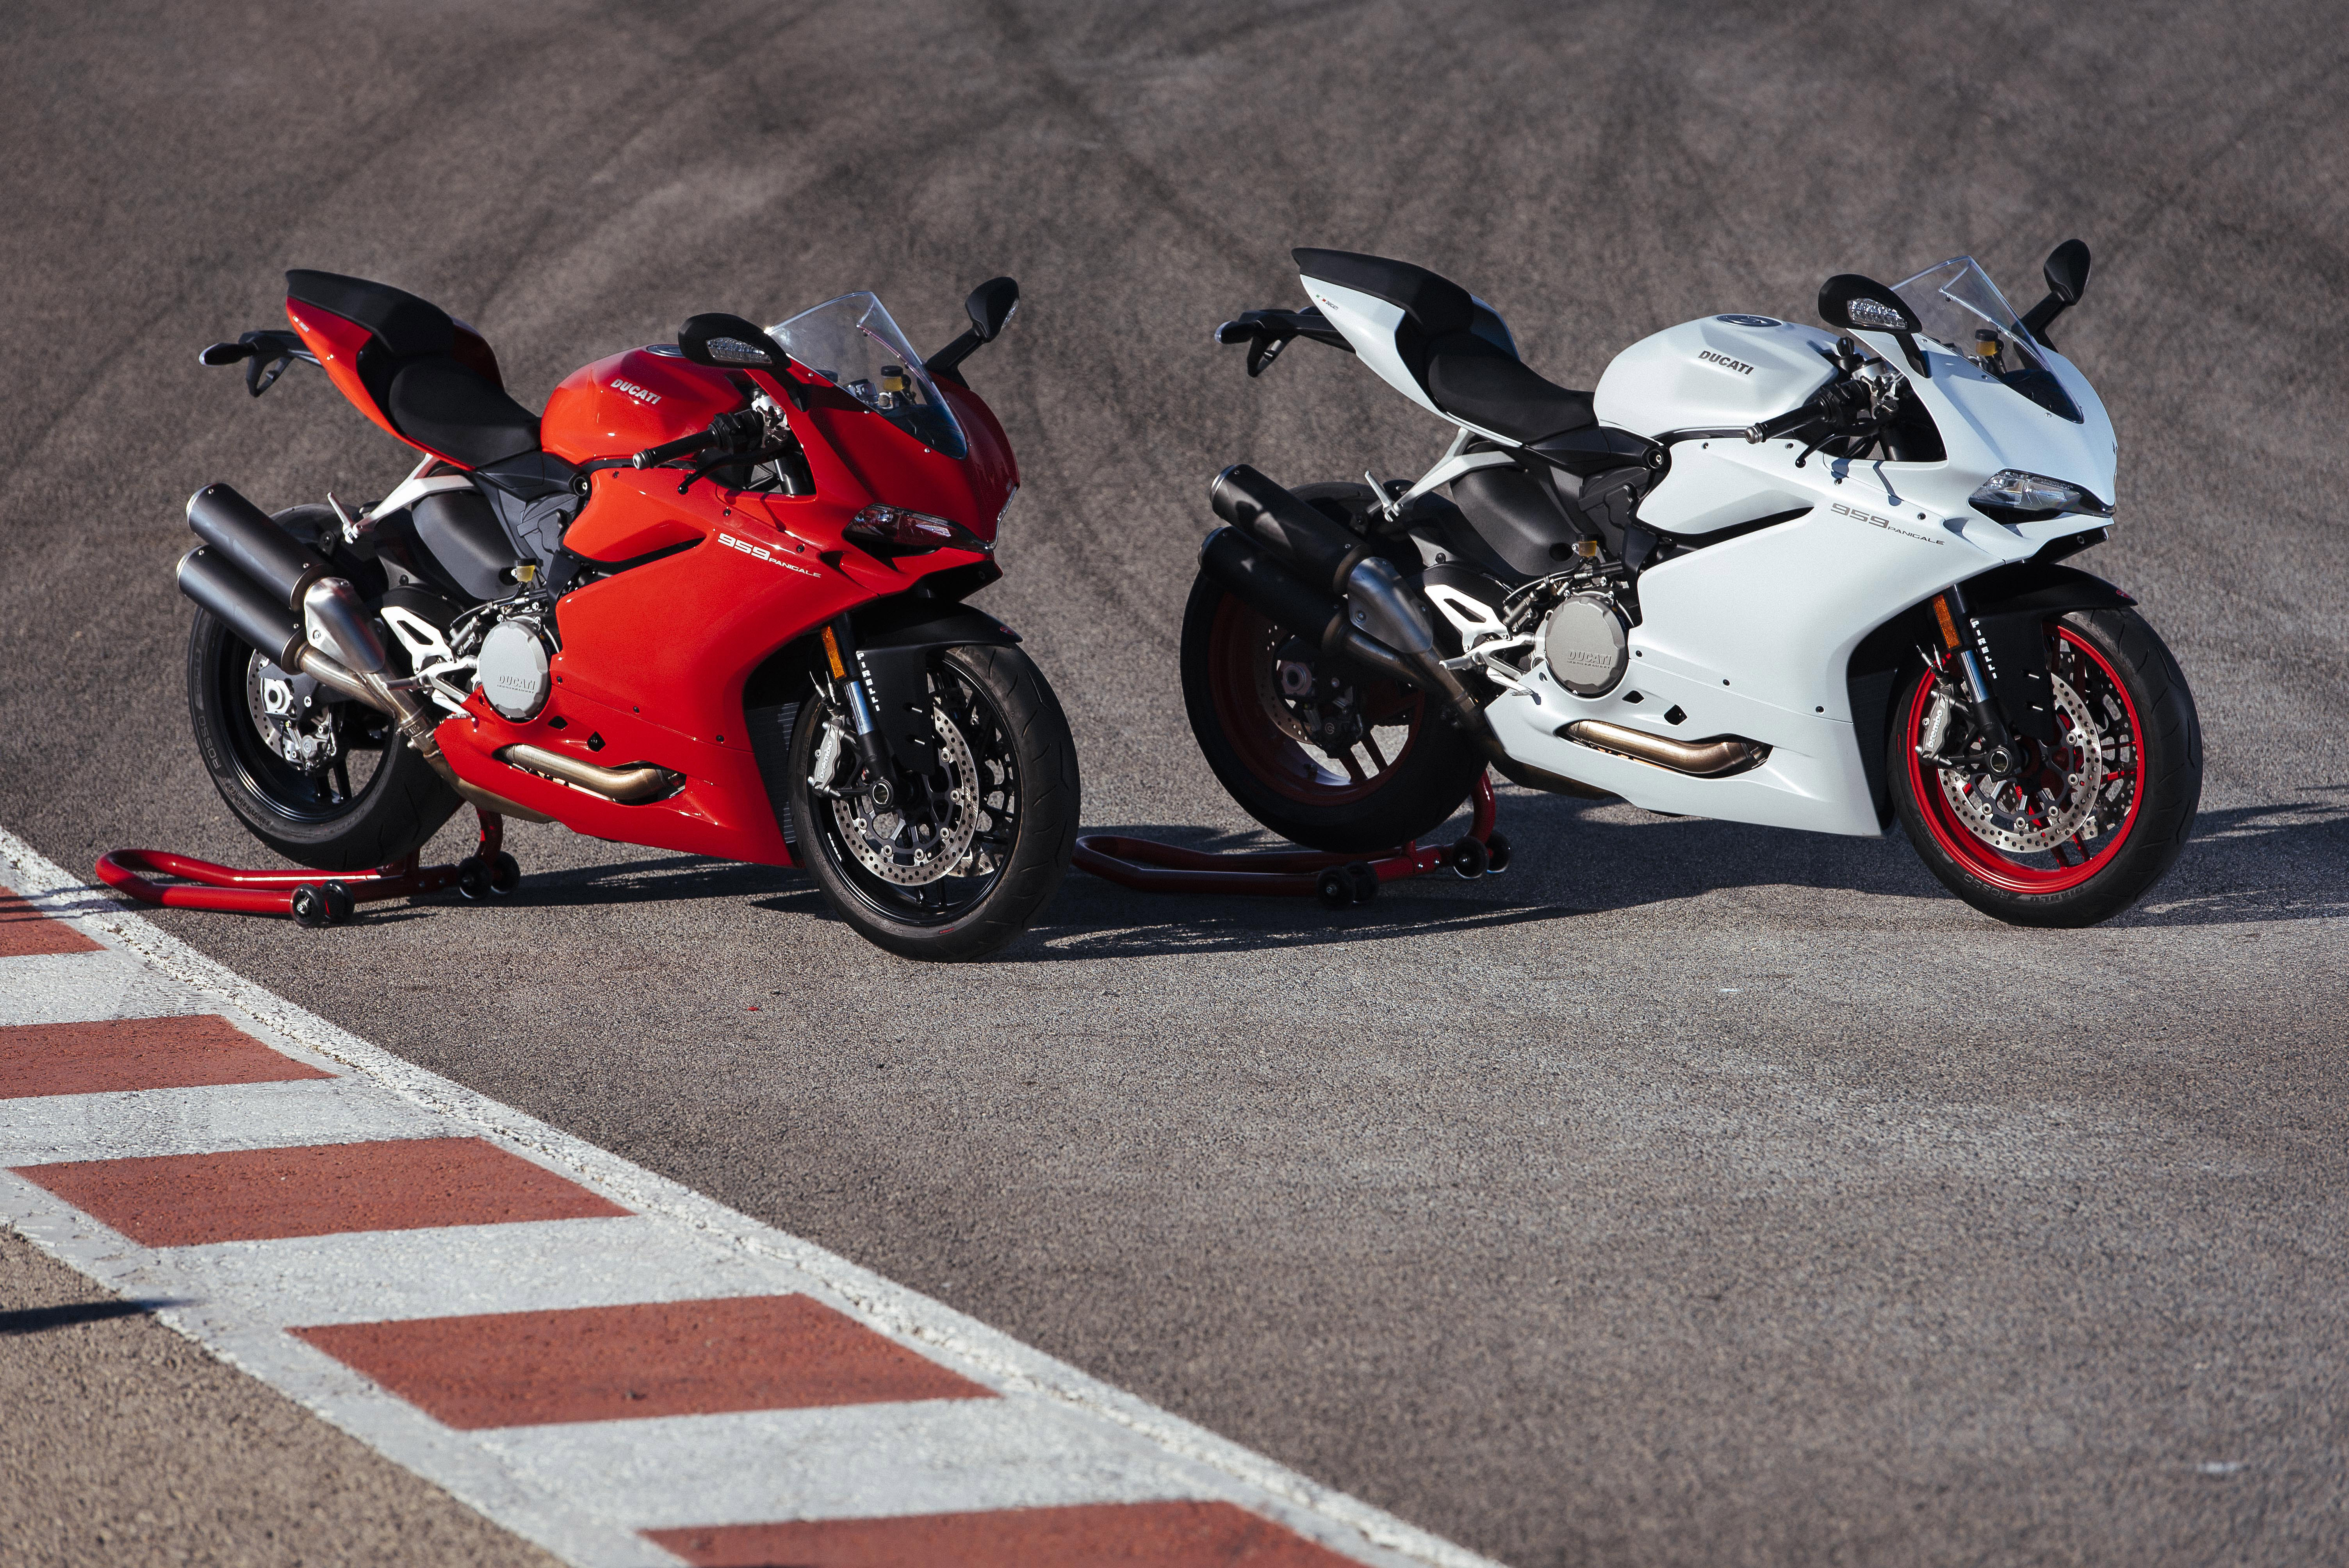 First ride: Ducati 959 Panigale review